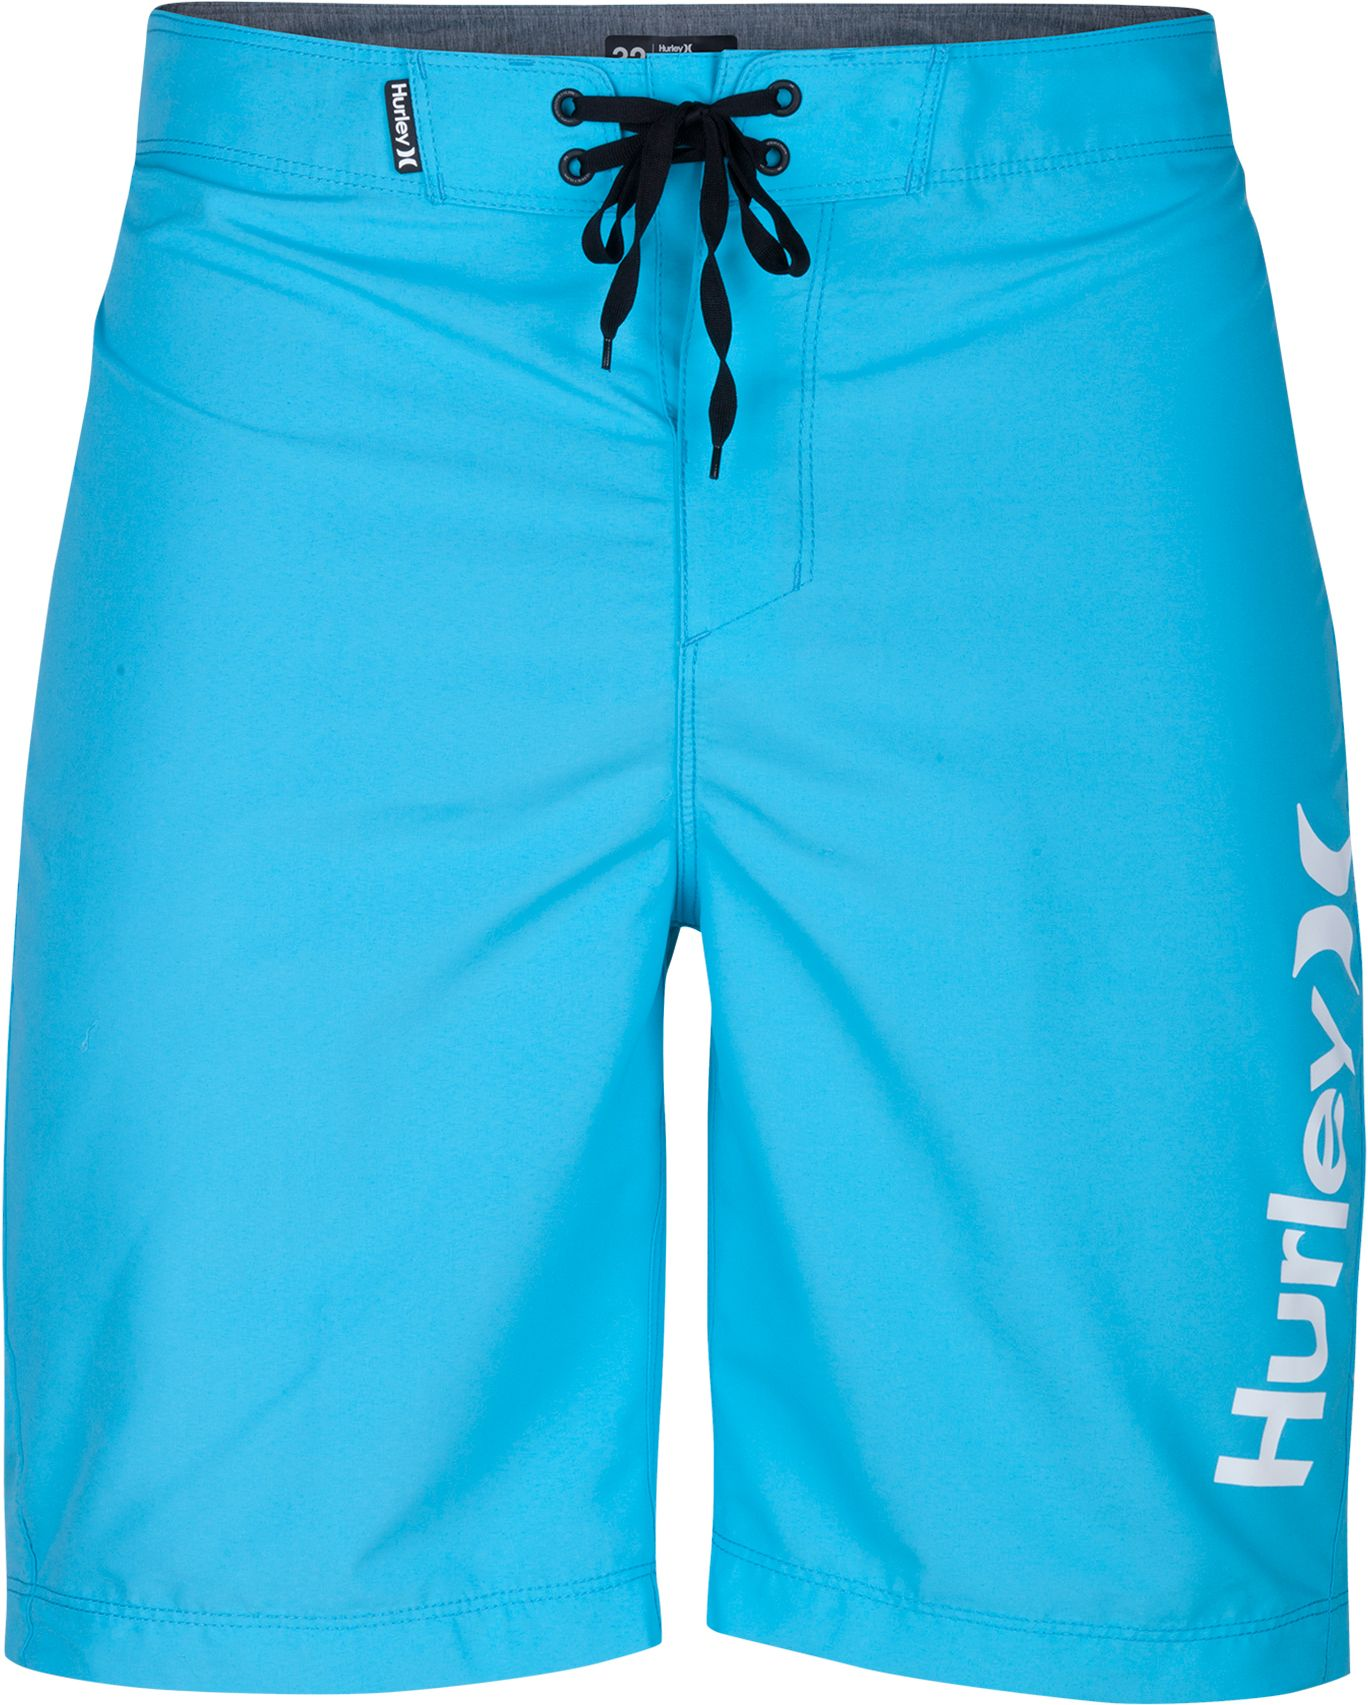 Cheap Board Shorts - Hardon Clothes